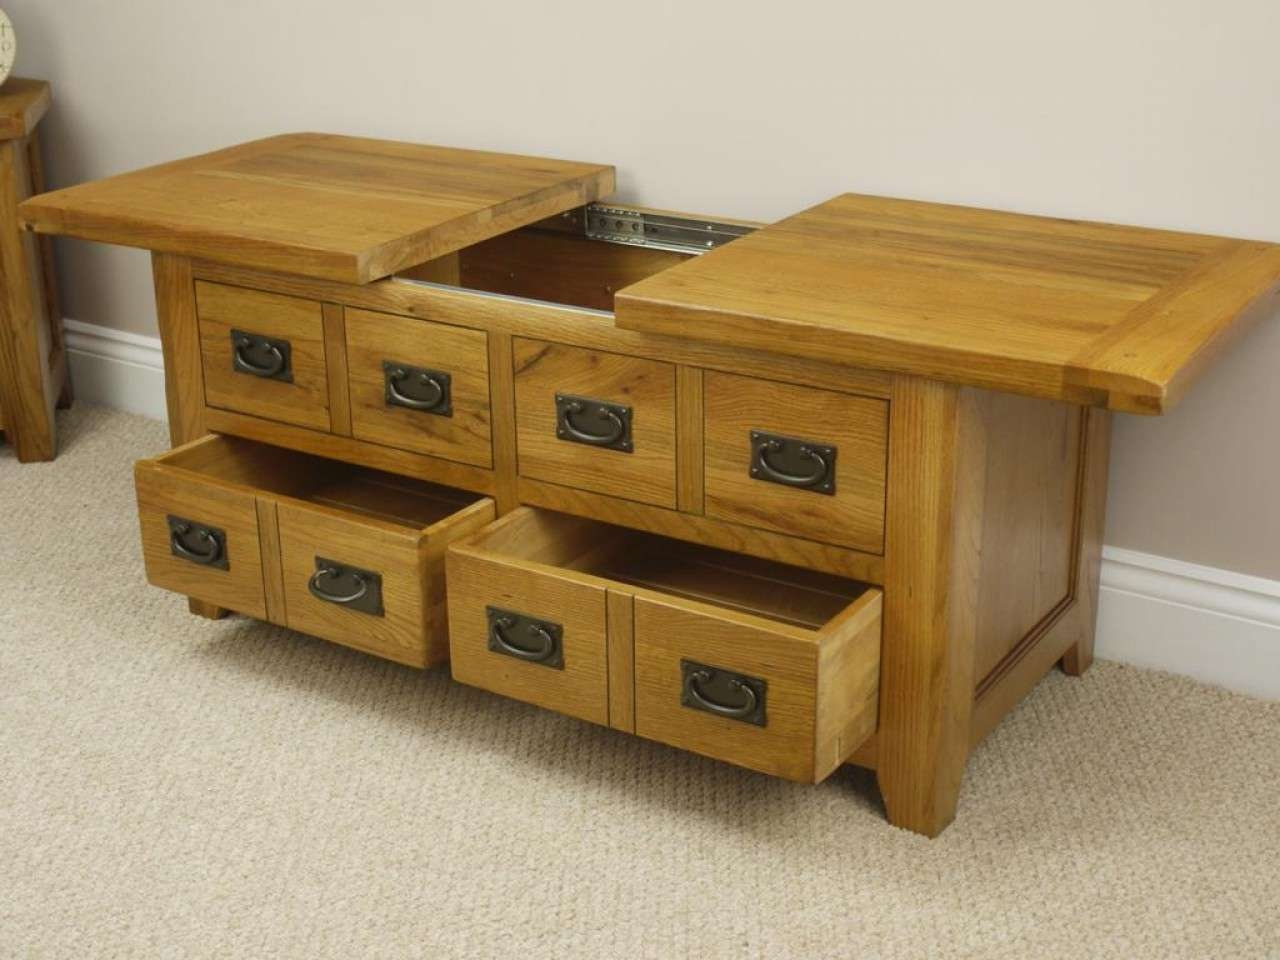 Rustic Storage Coffee Table Style — Home Design Ideas Within Famous Square Coffee Table With Storage Drawers (View 11 of 20)